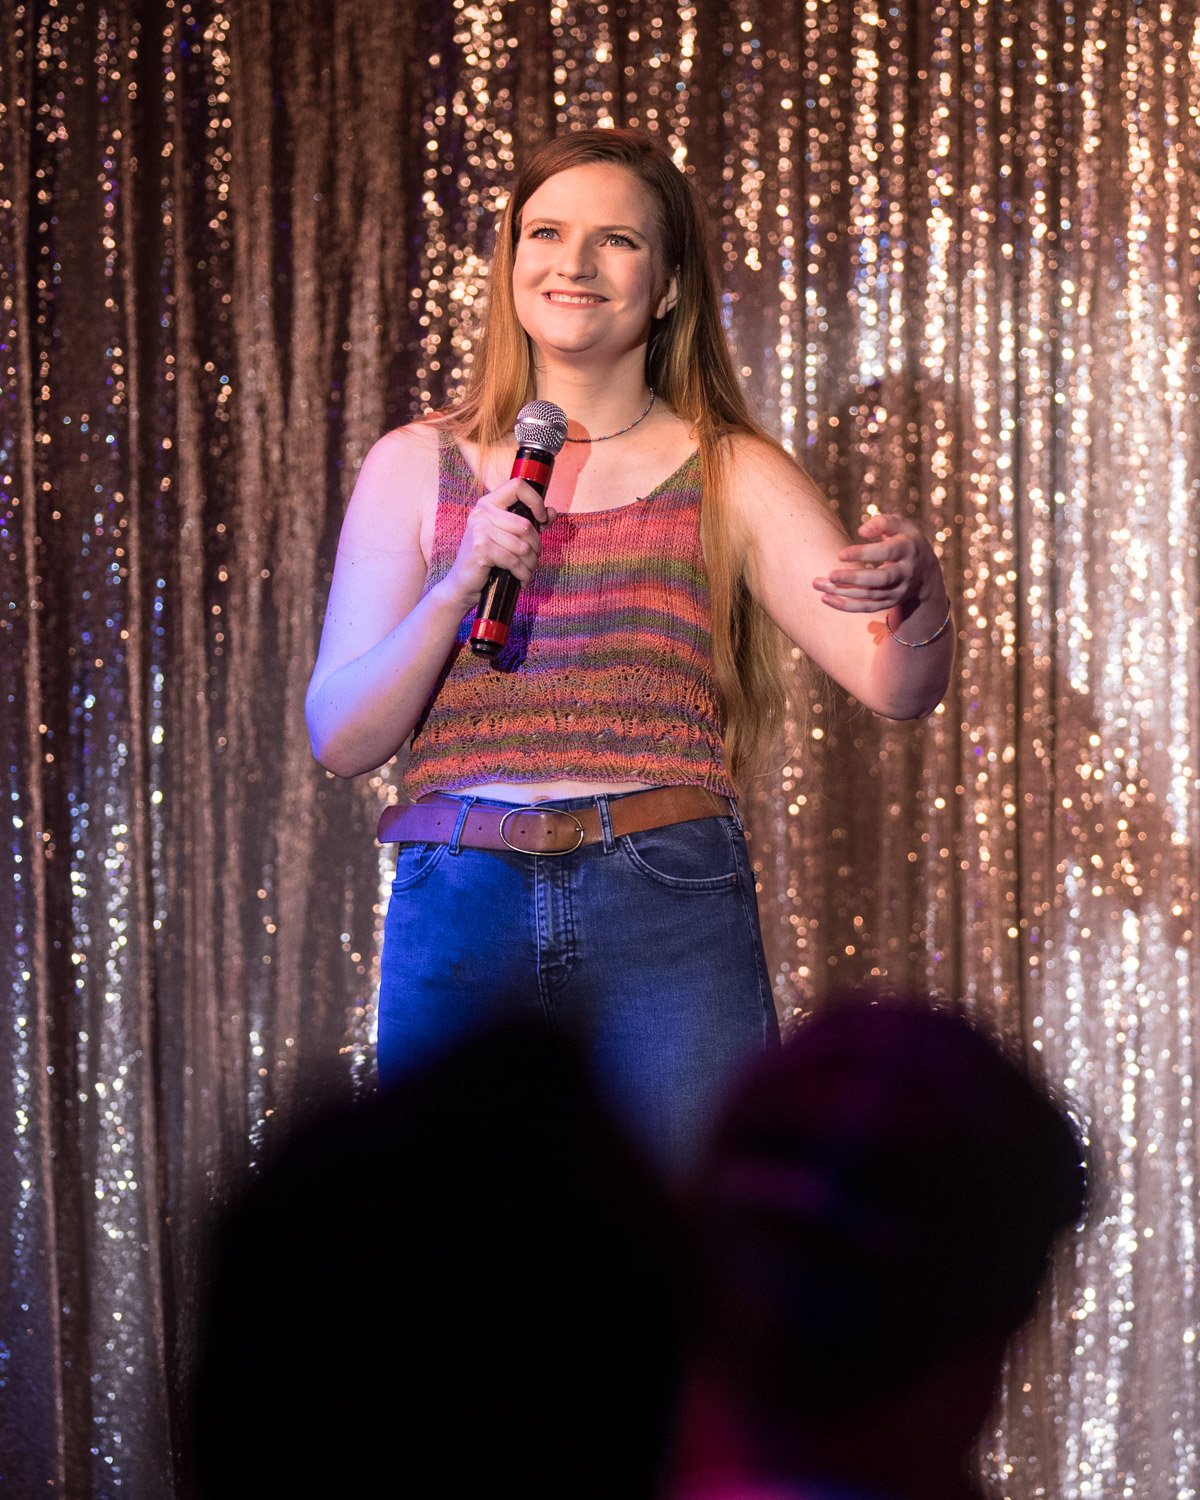 Comedian Kaitlin Rounds during the Comedy Cabaret at Missie B's in Kansas City, MO on June 29, 2021